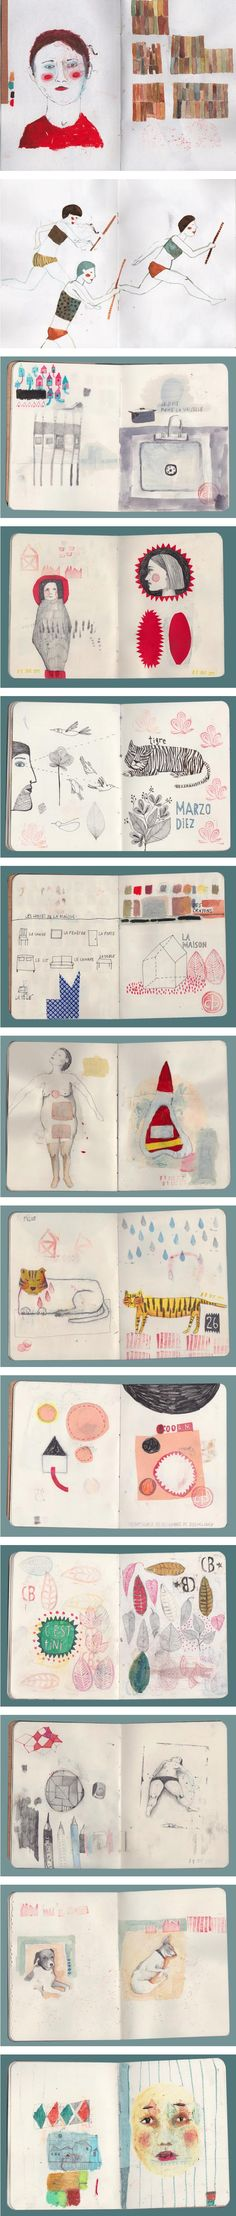 The beautiful sketchbook of Carolina Bernal http://madebywolf.com/blog/post/the-sketchbook-of-carolina-bernal